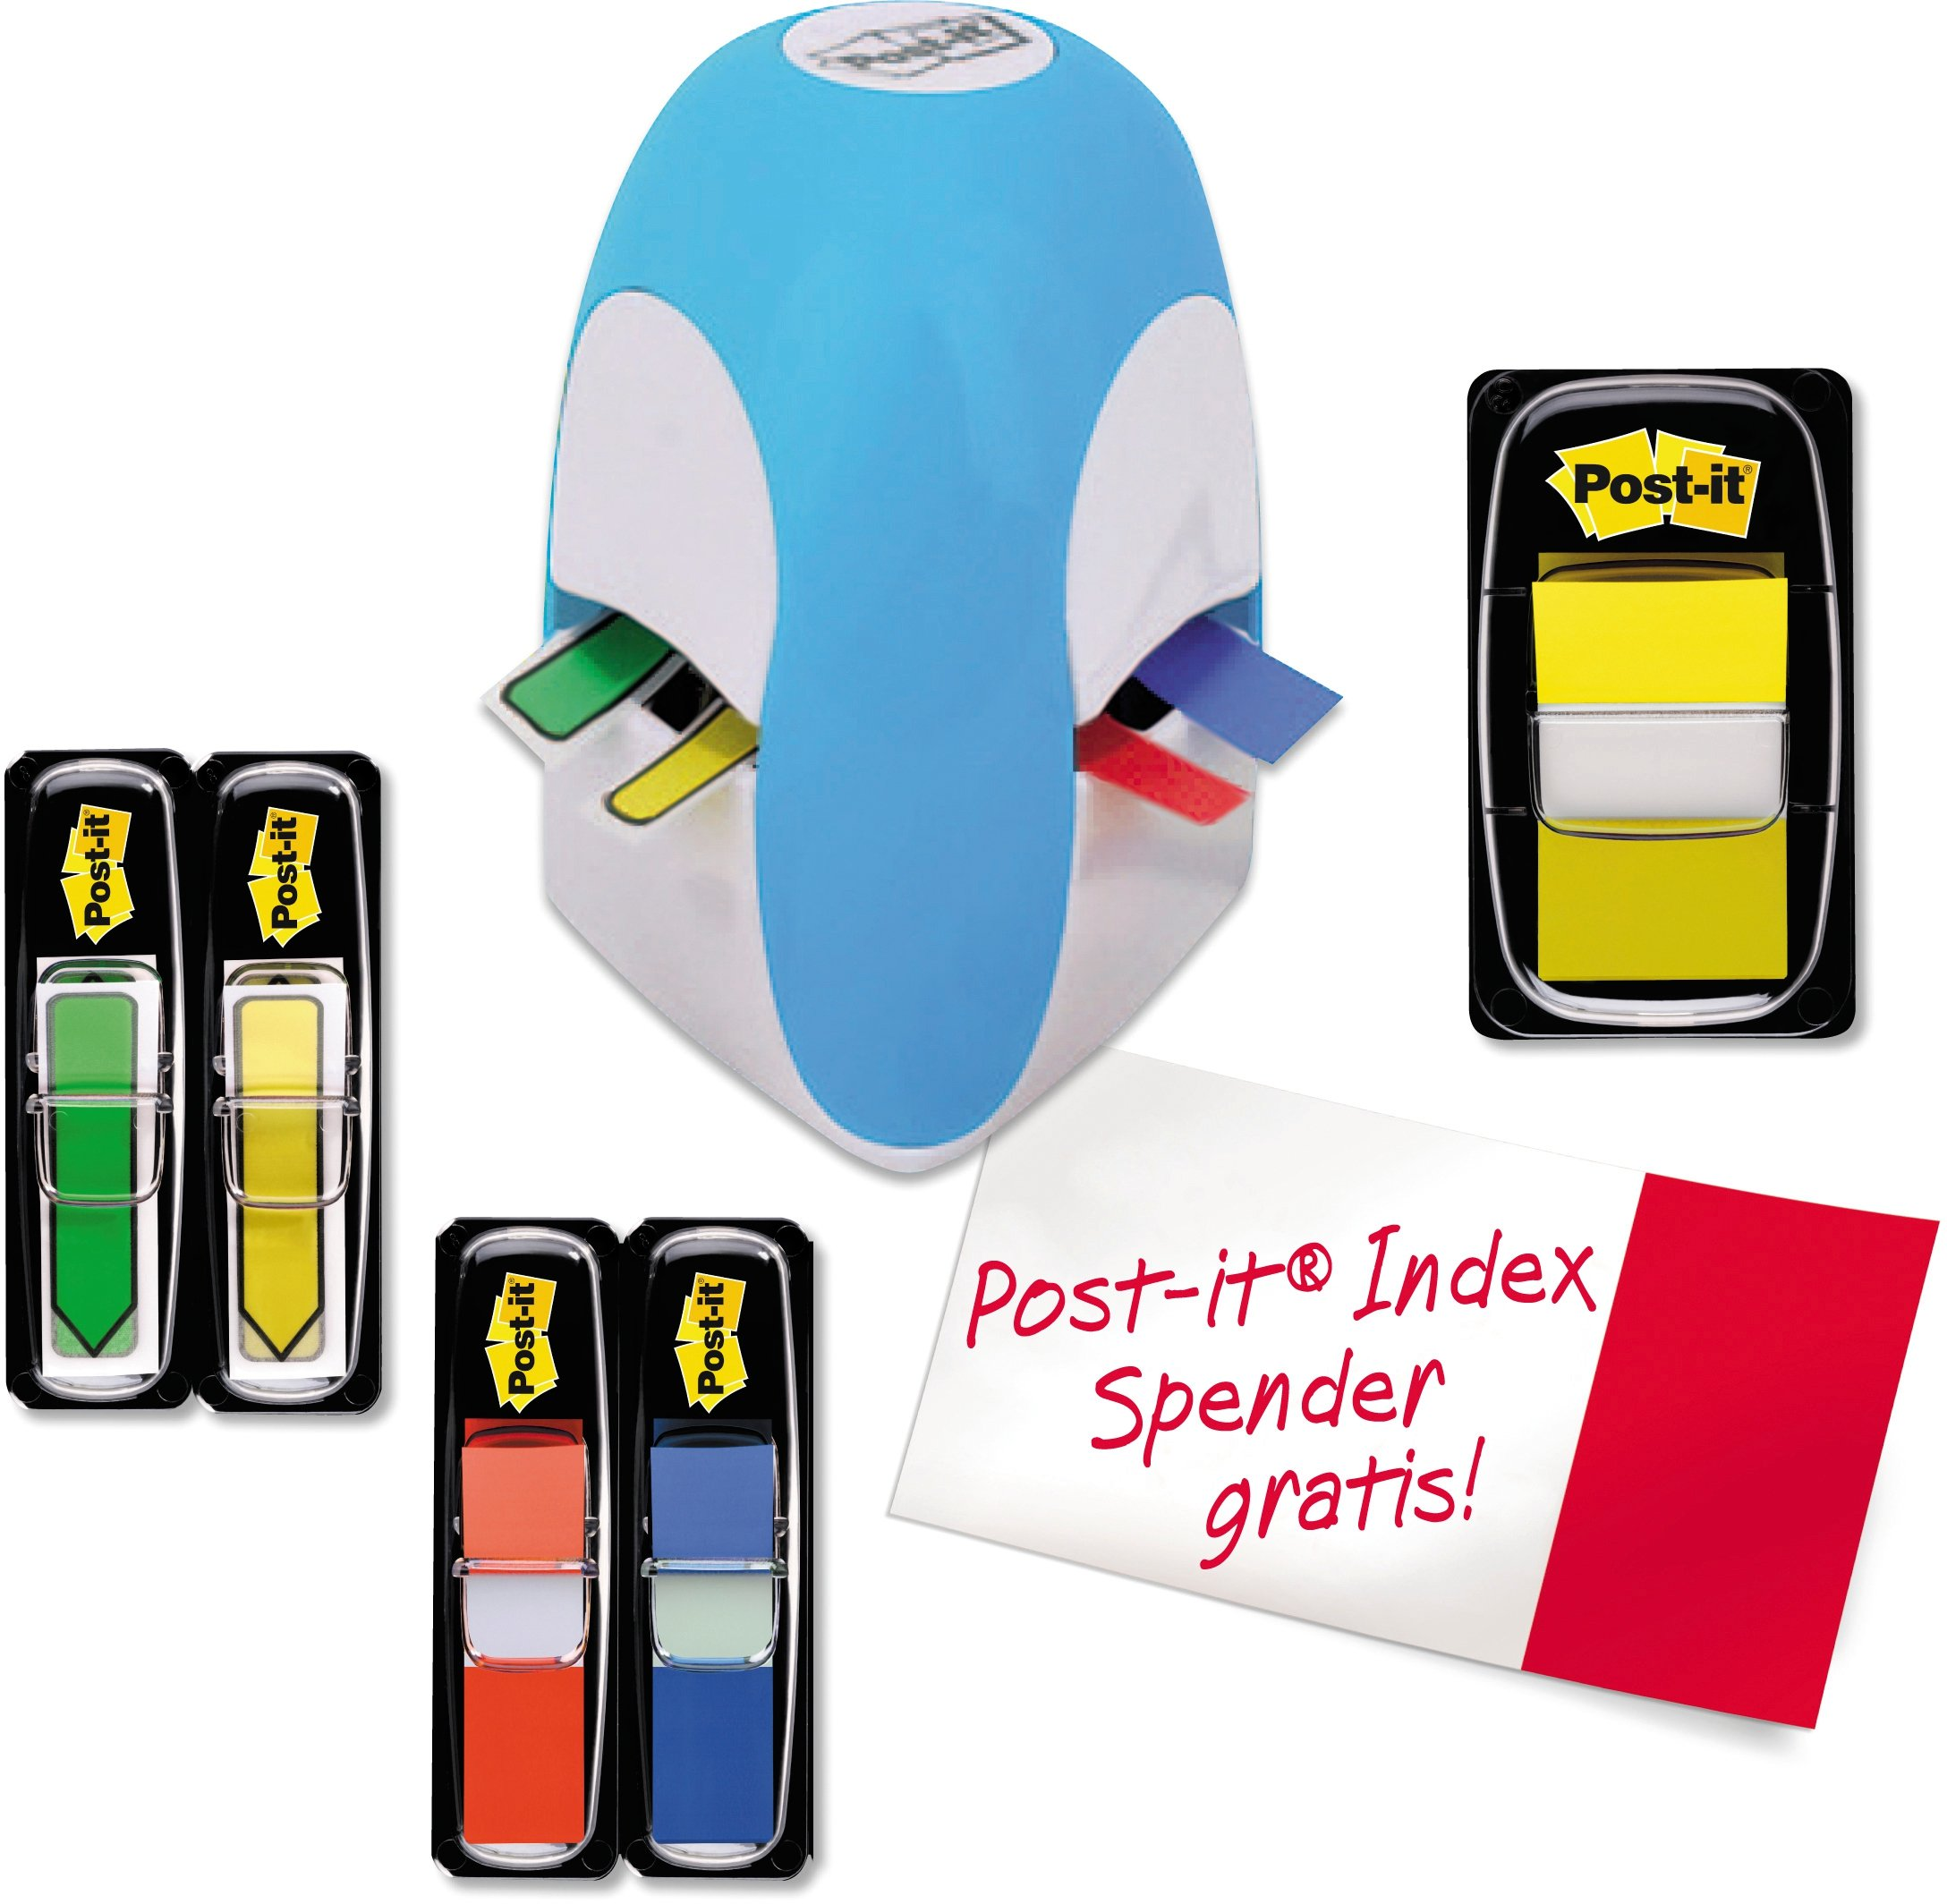 Post-It Index Tridex Blue Dispenser with 5 Packs of Flags by Post-it (Image #4)